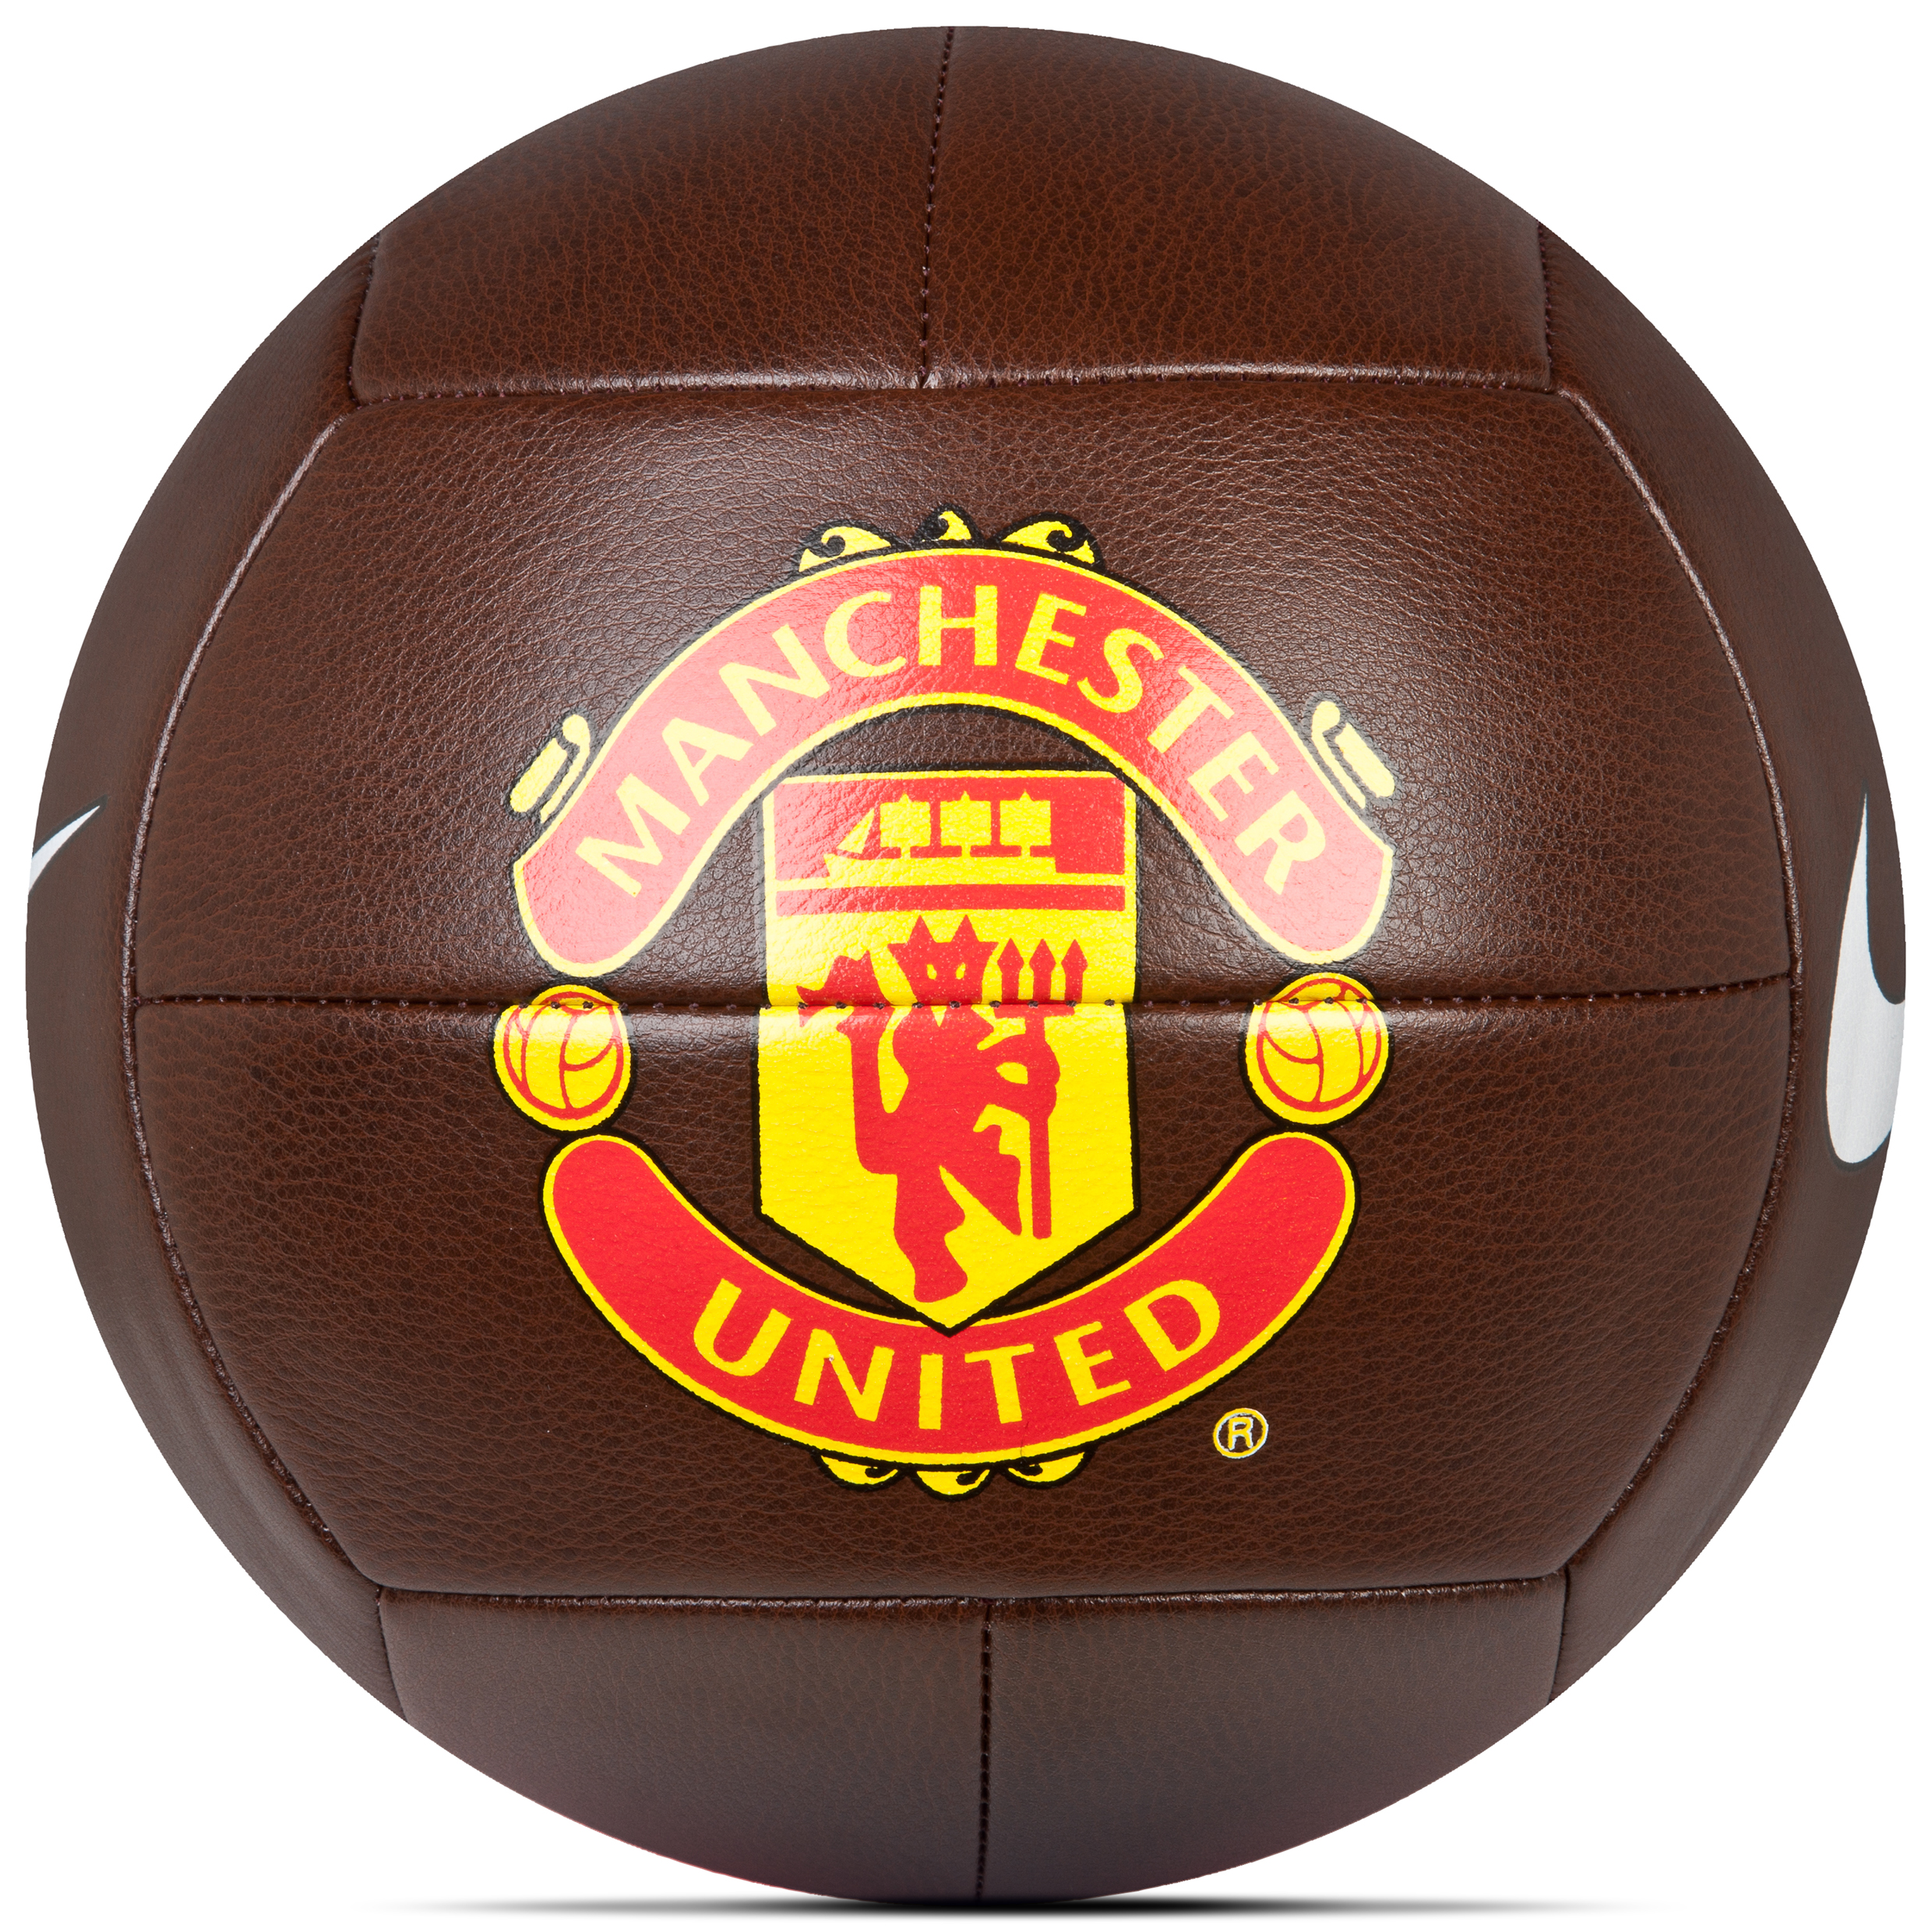 Manchester United Prestige Size 5 Football - Brown/Red/(Black)